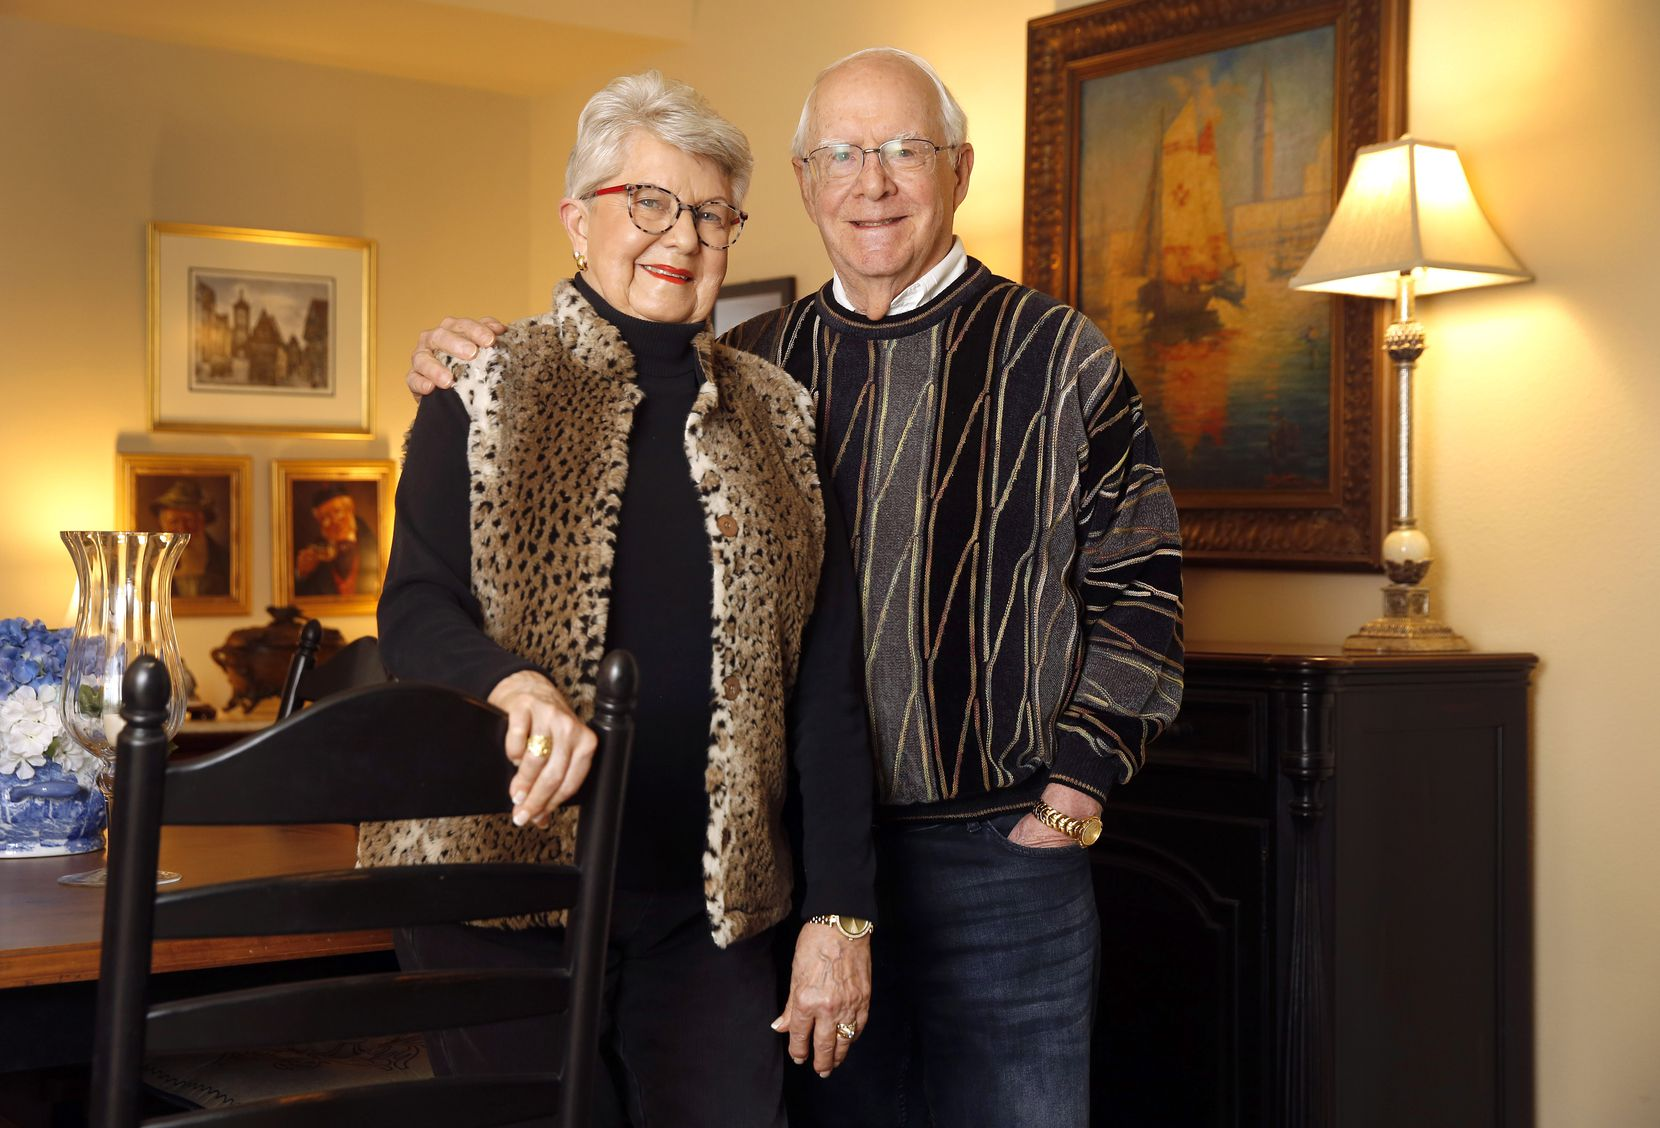 Jack and Nancy Neal live at the Overture, a senior community in Fort Worth.